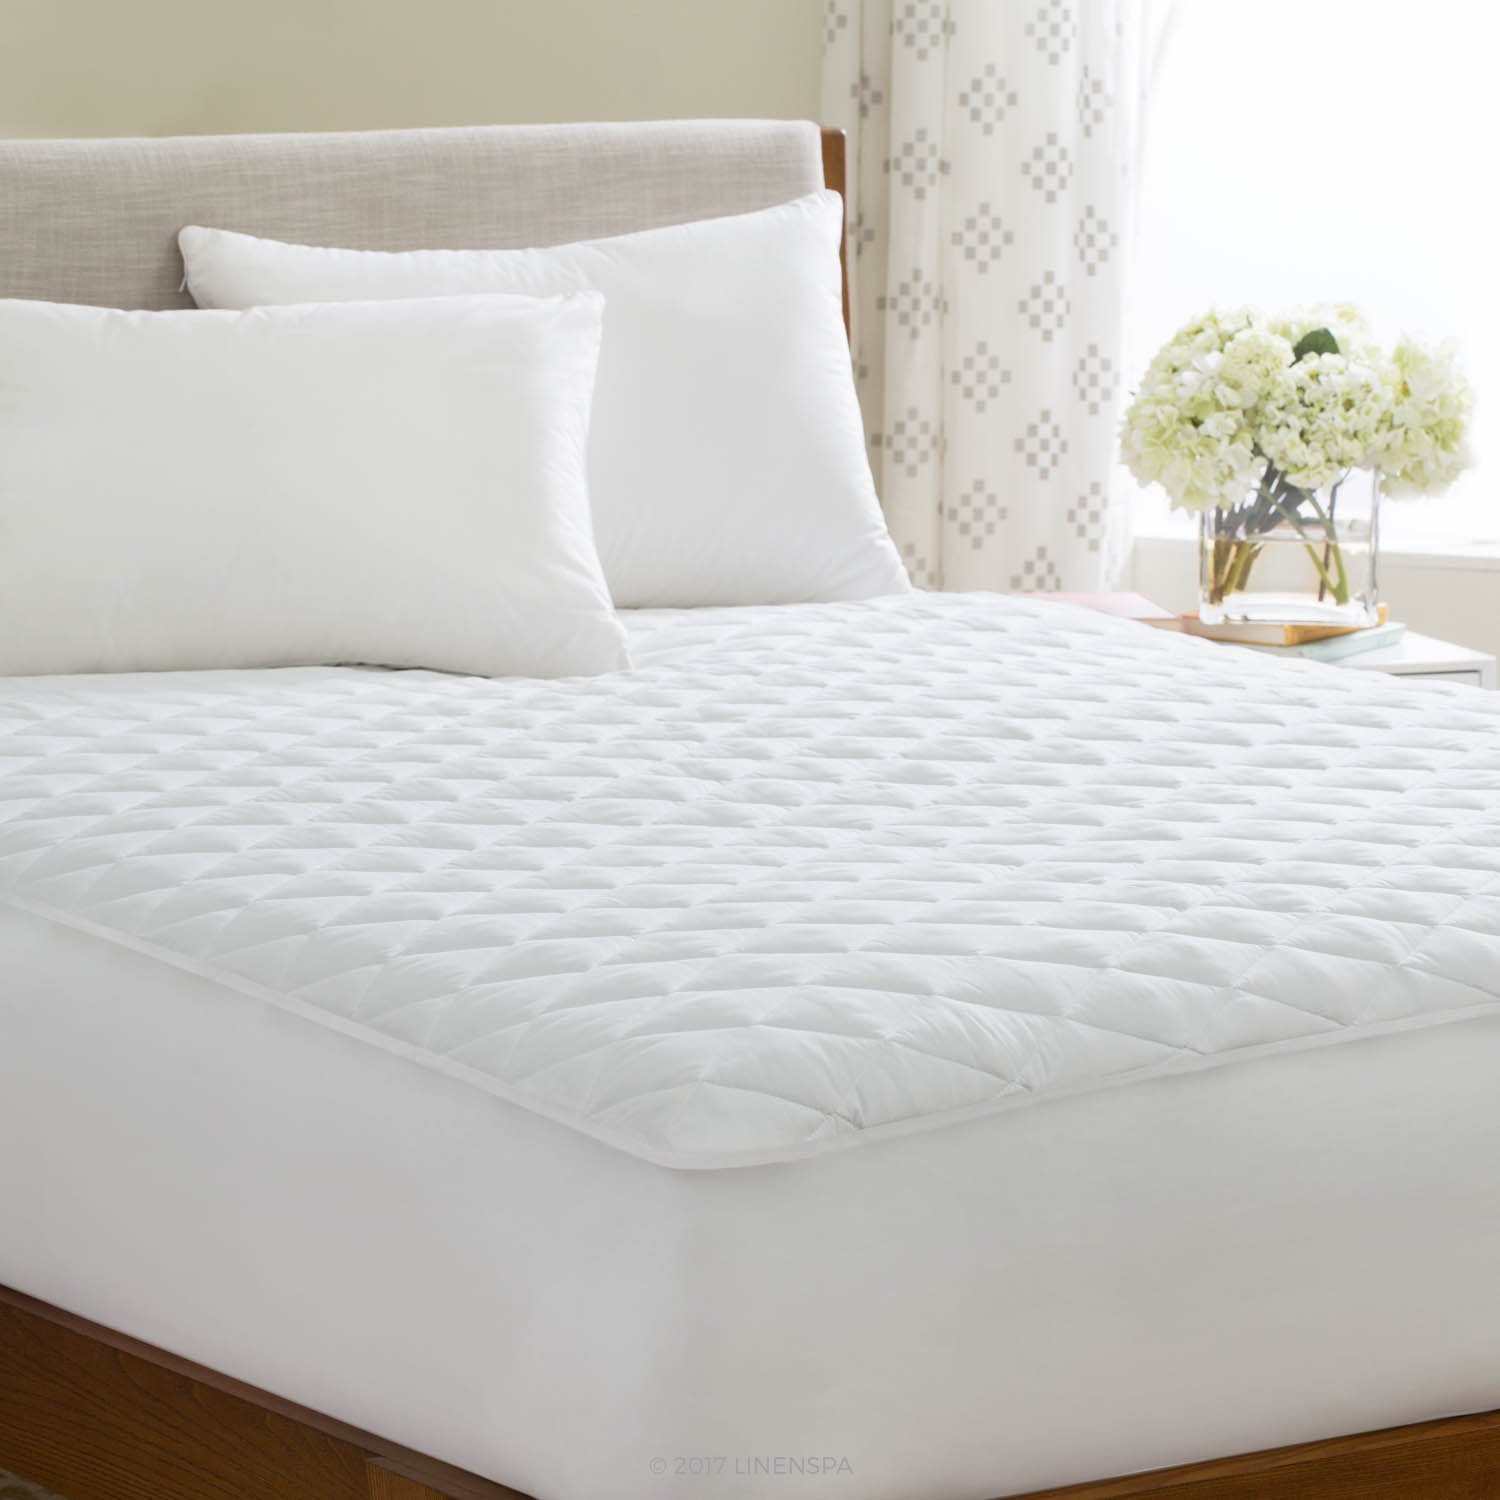 Linenspa Waterproof Quilted Mattress Pad